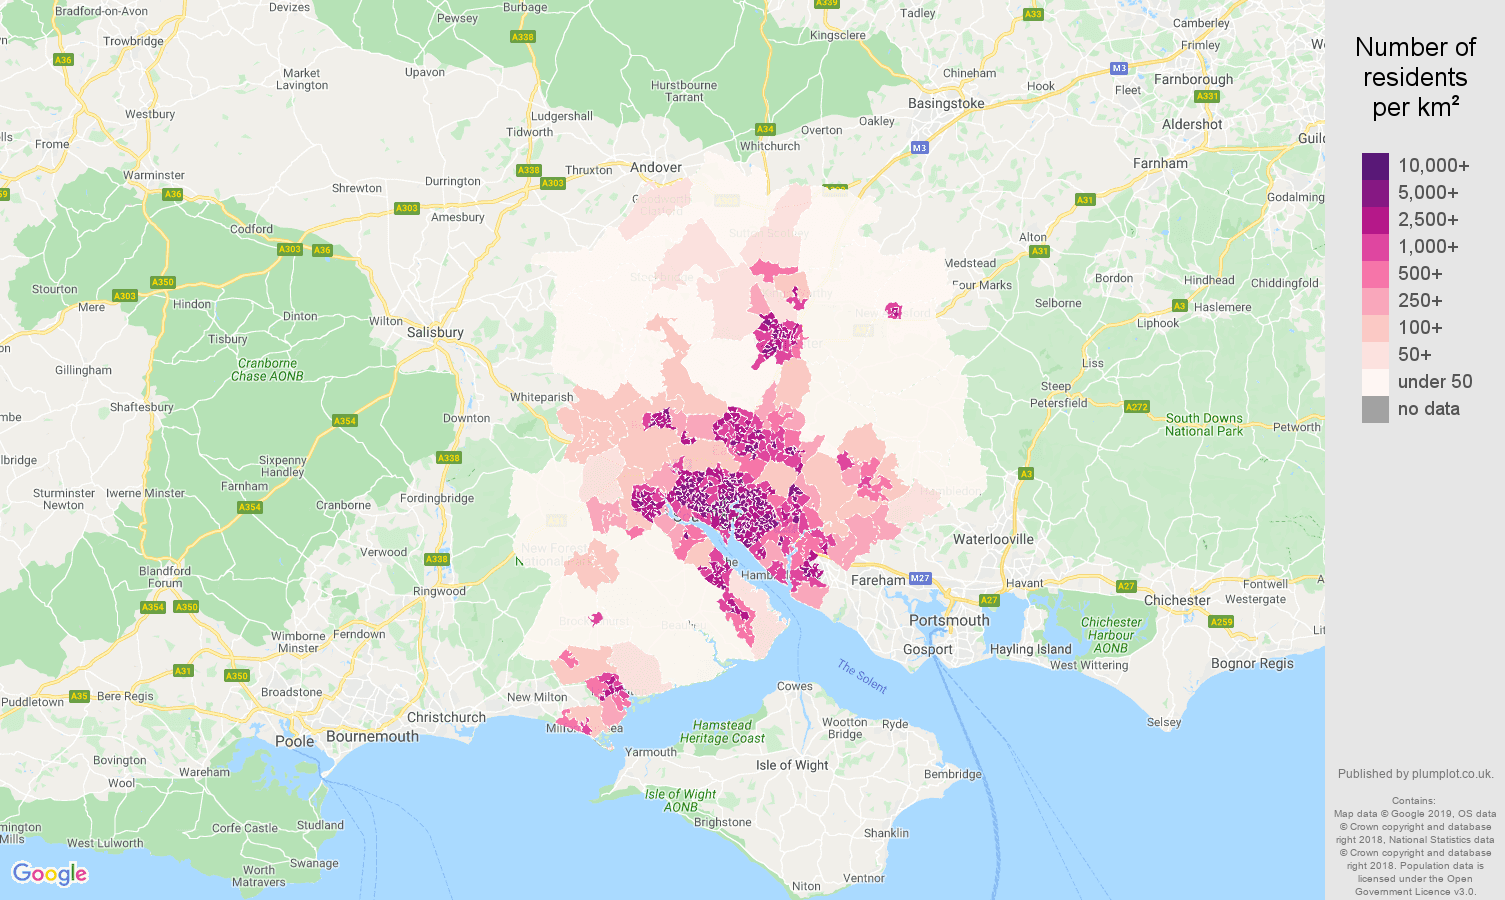 Southampton population density map